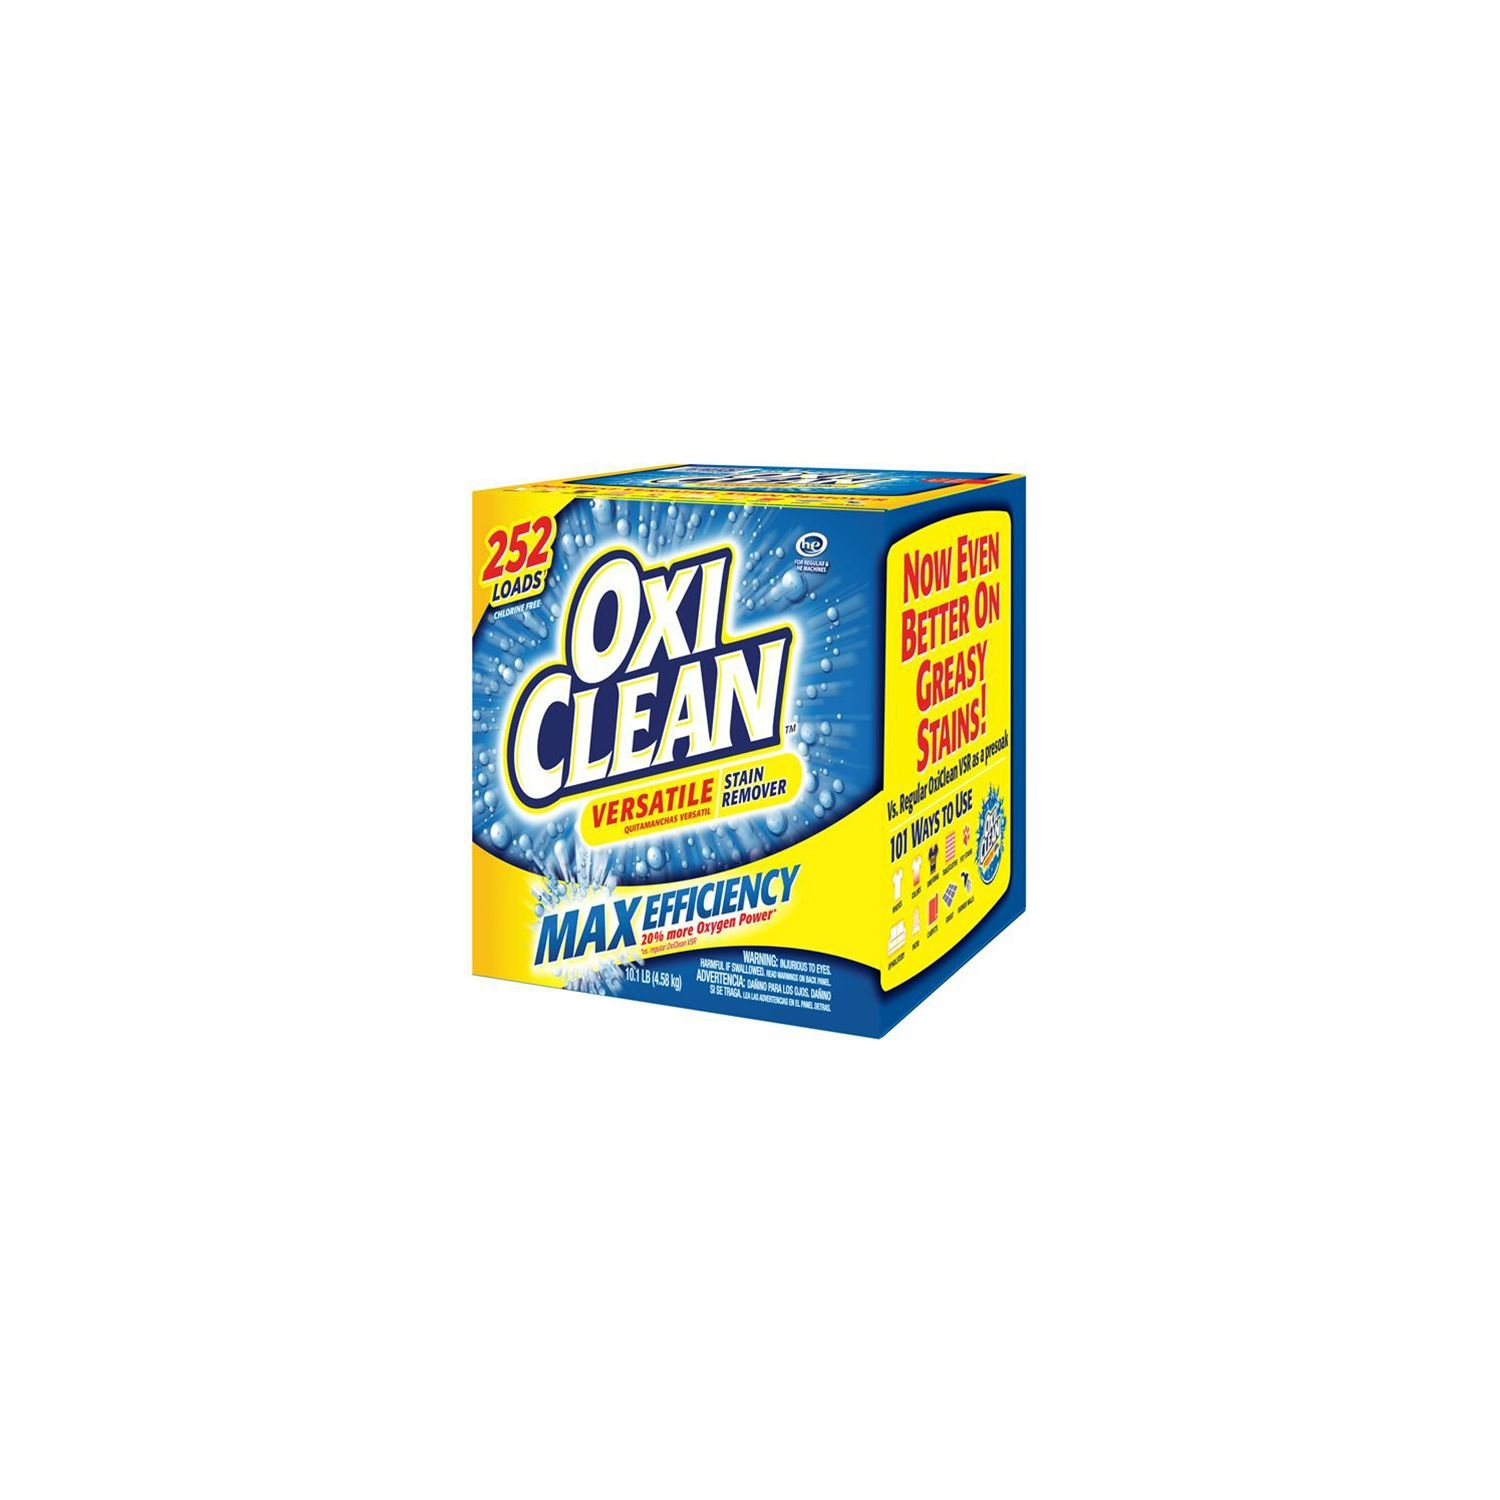 OxiClean Max Efficiency Stain Remover (252 Loads)